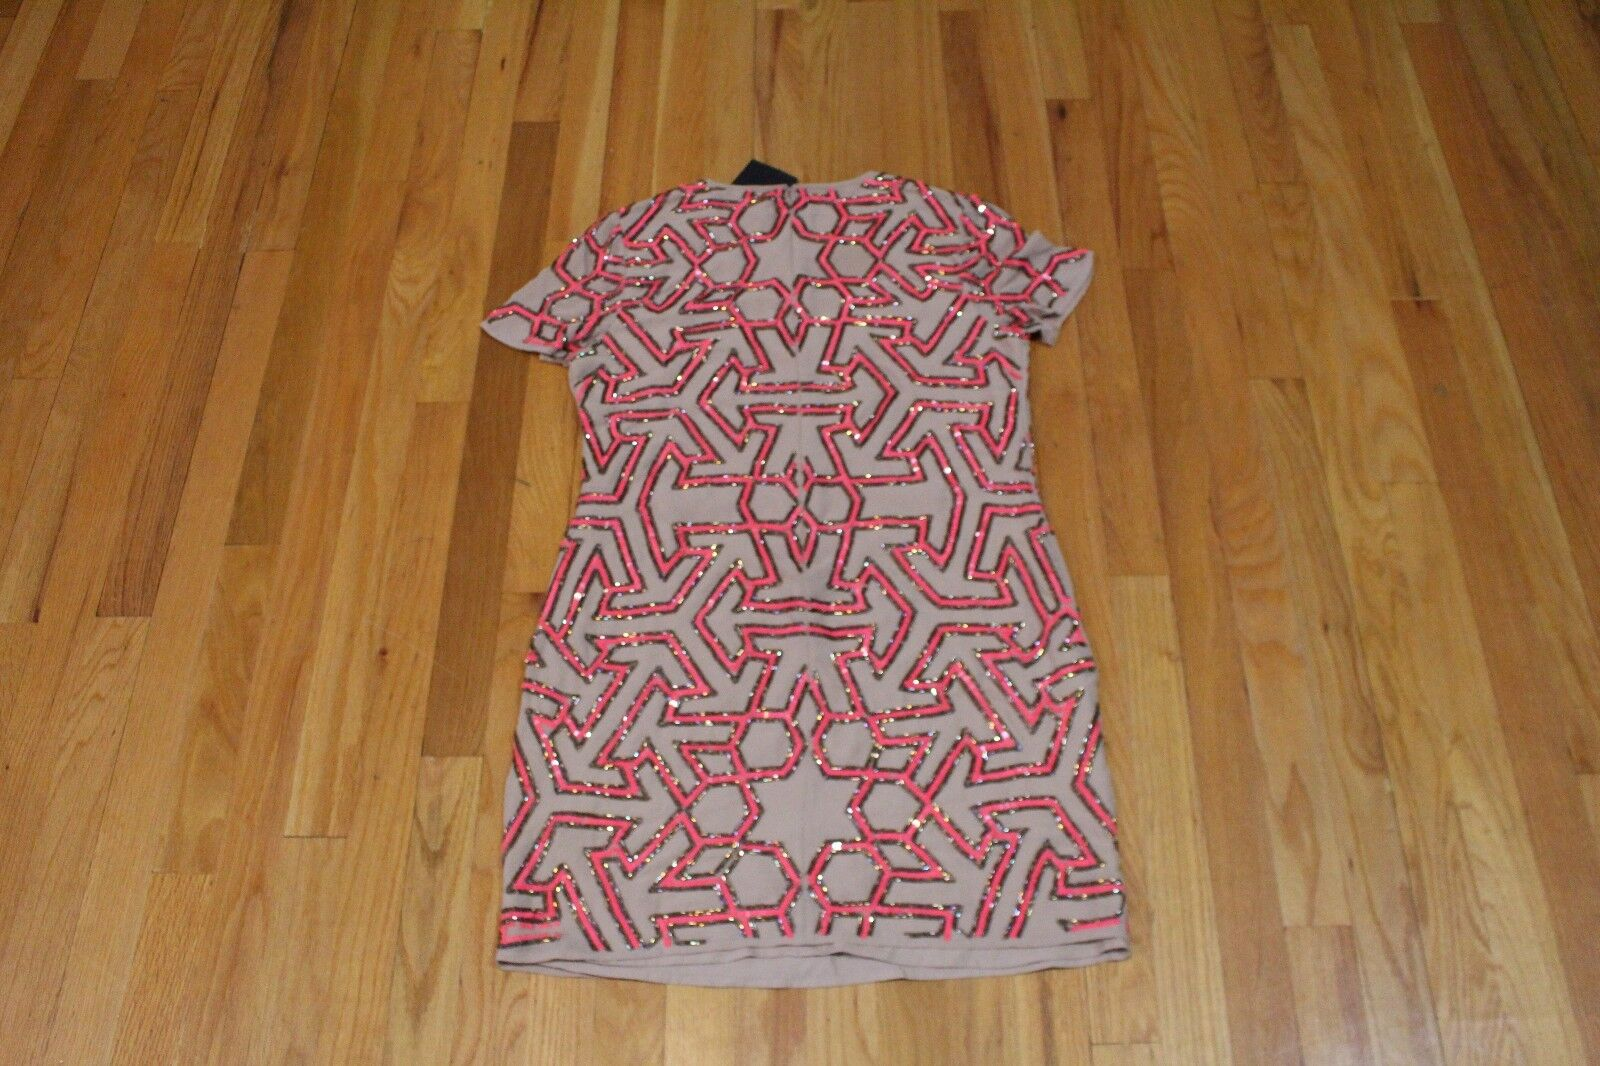 ASOS GRAPHIC BEADED T-SHIRT DRESS DRESS DRESS TAUPE HOT PINK SIZE 6 US NEW 3fbeeb